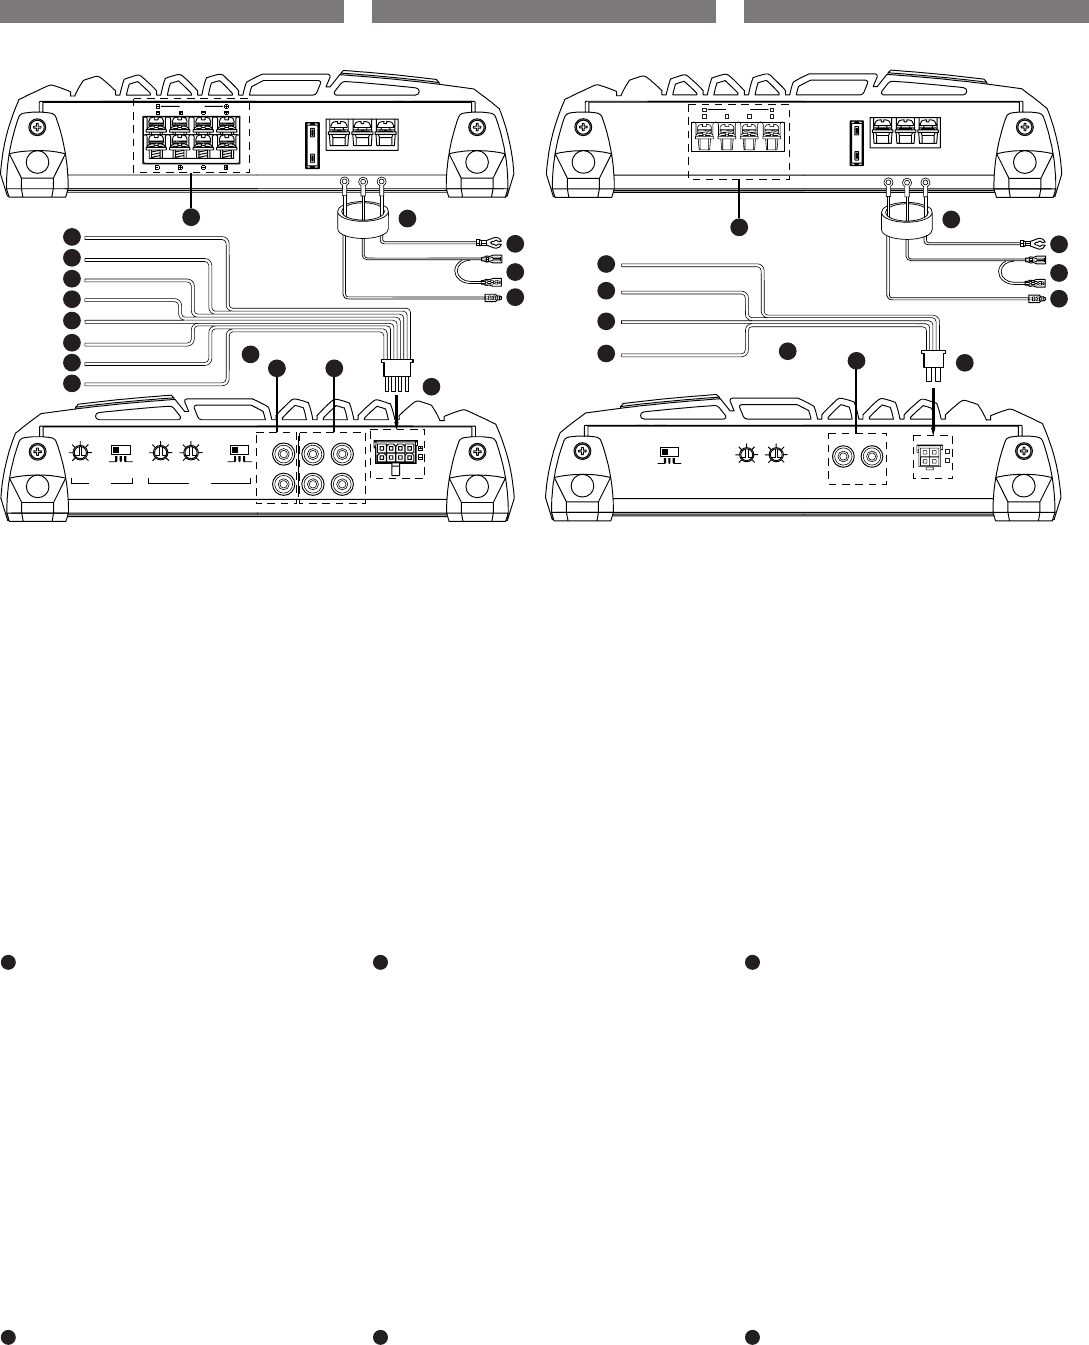 cf01c11c d9cb 412f b695 cac1a12bac56 bg6 page 6 of alpine stereo amplifier mrp t220 user guide alpine mrp-f240 wiring diagram at mifinder.co